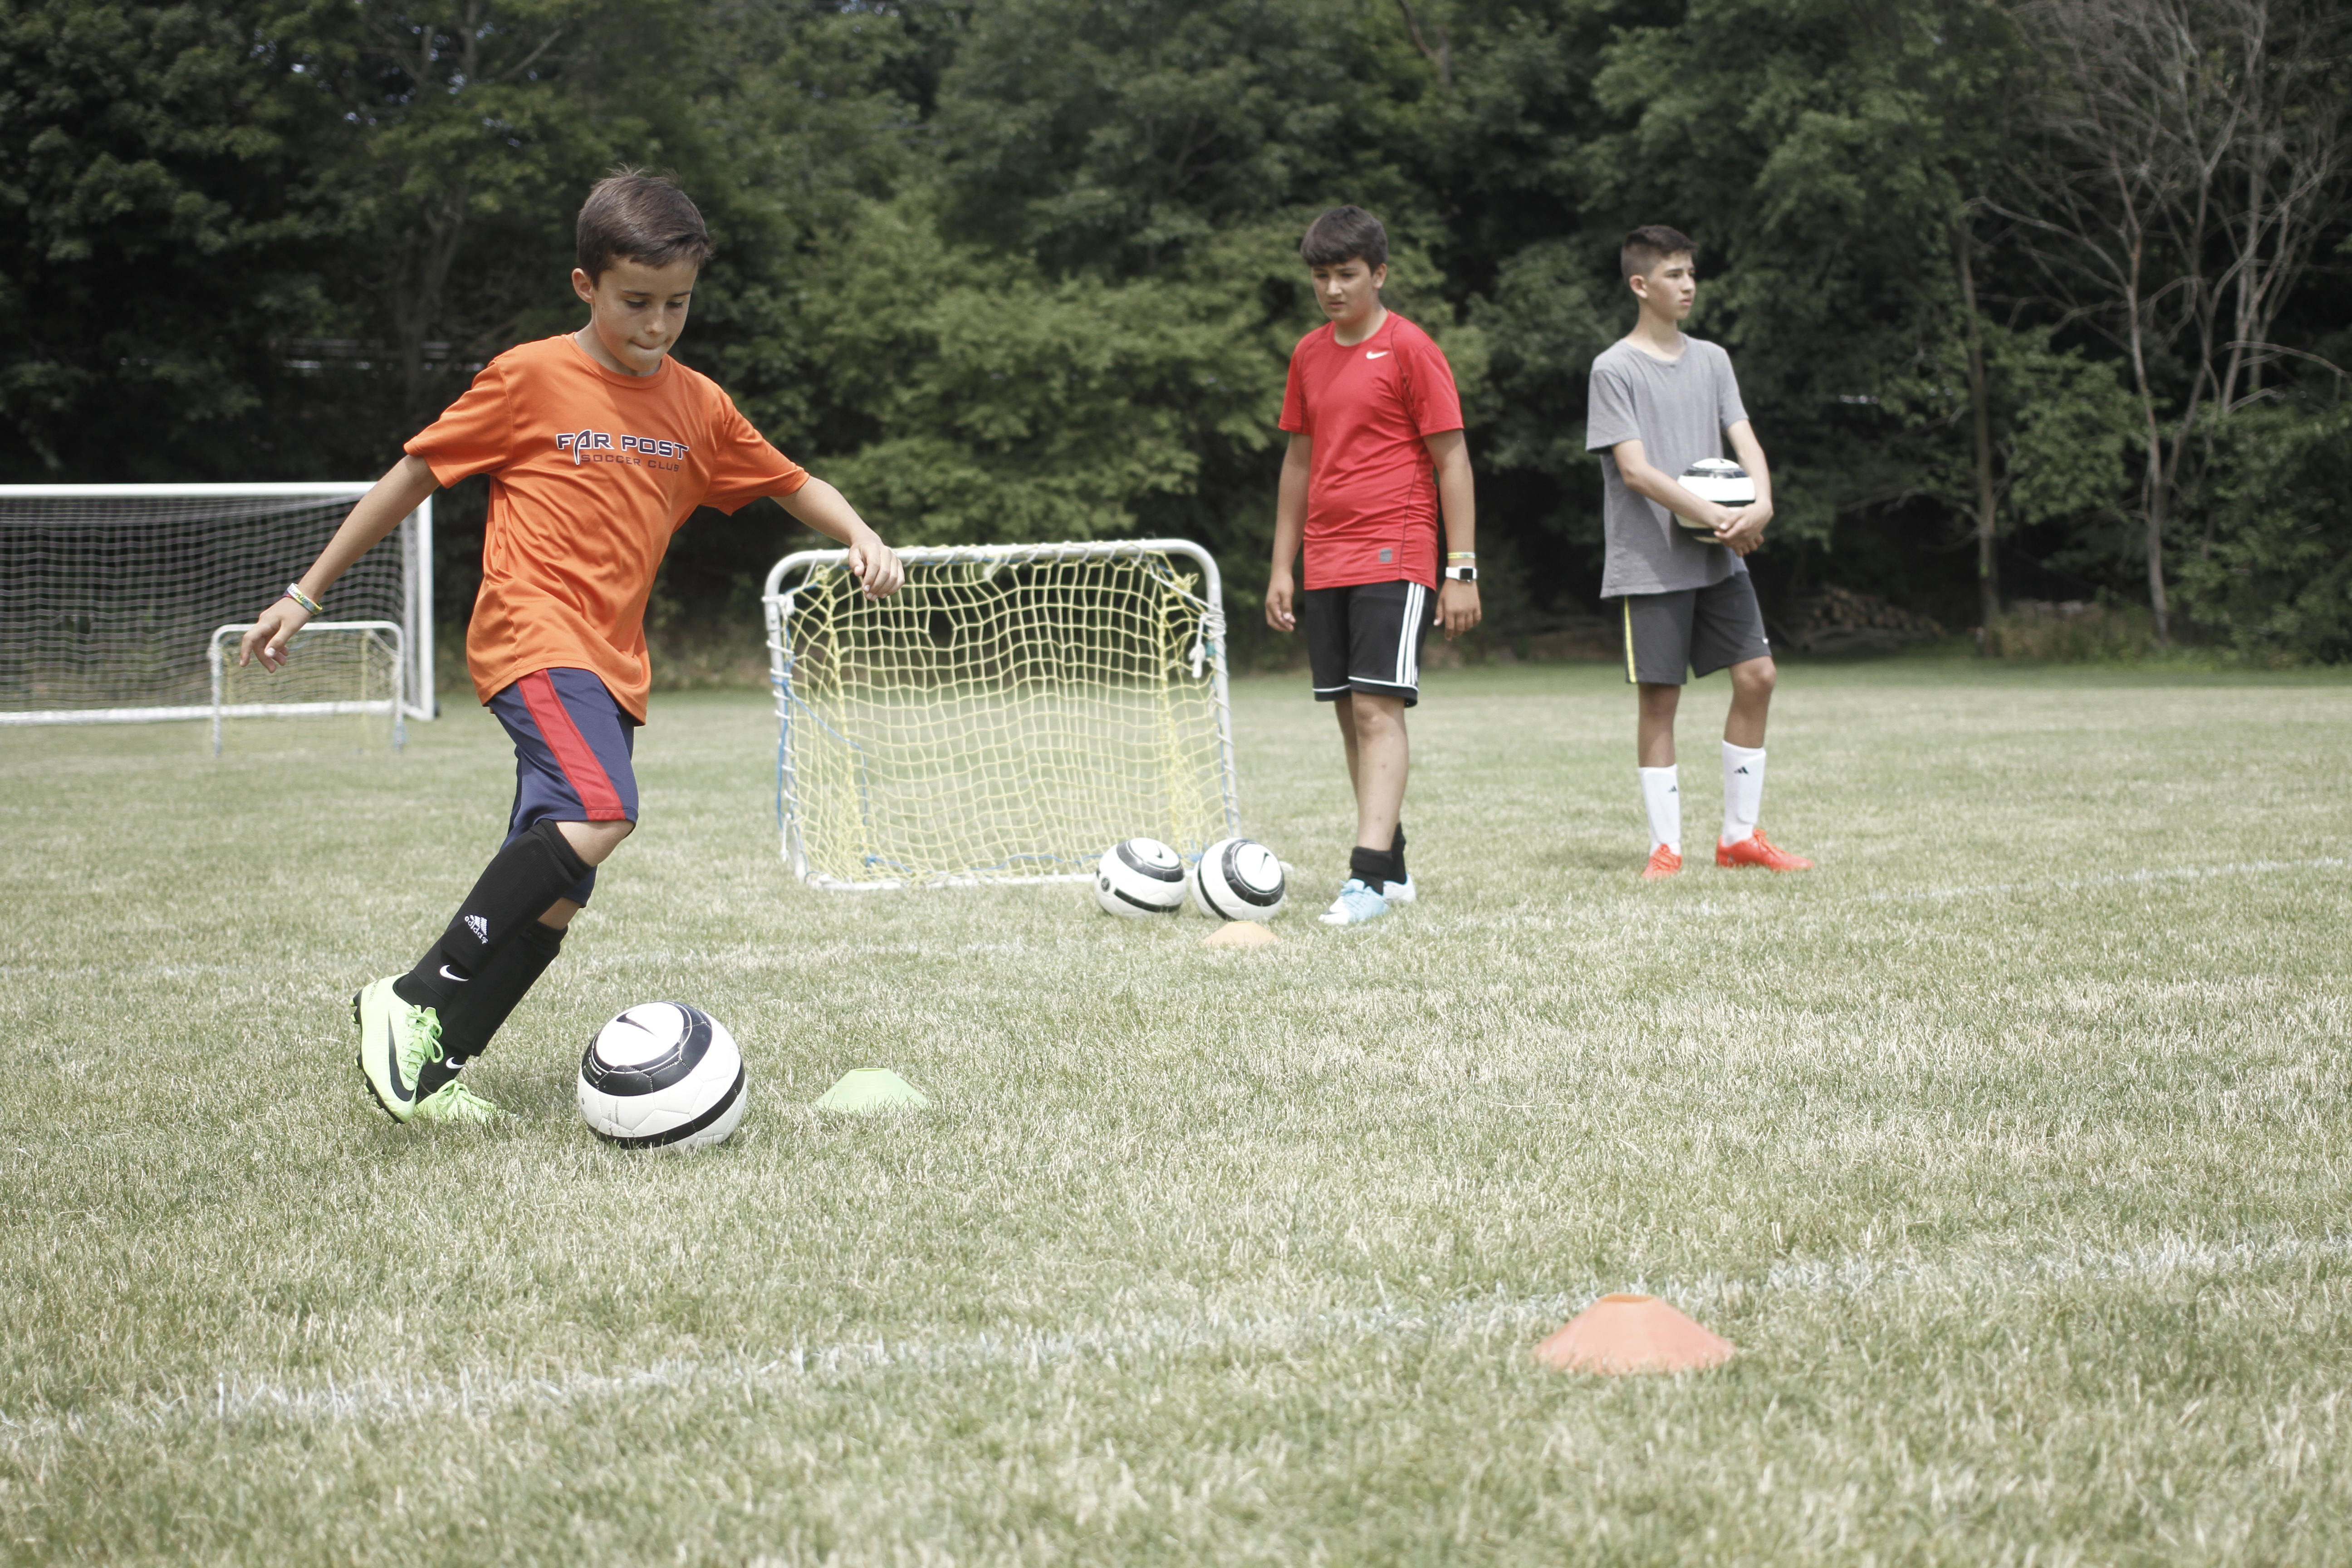 46ecd6069 Adidas Soccer Programs | MB Sports Camps